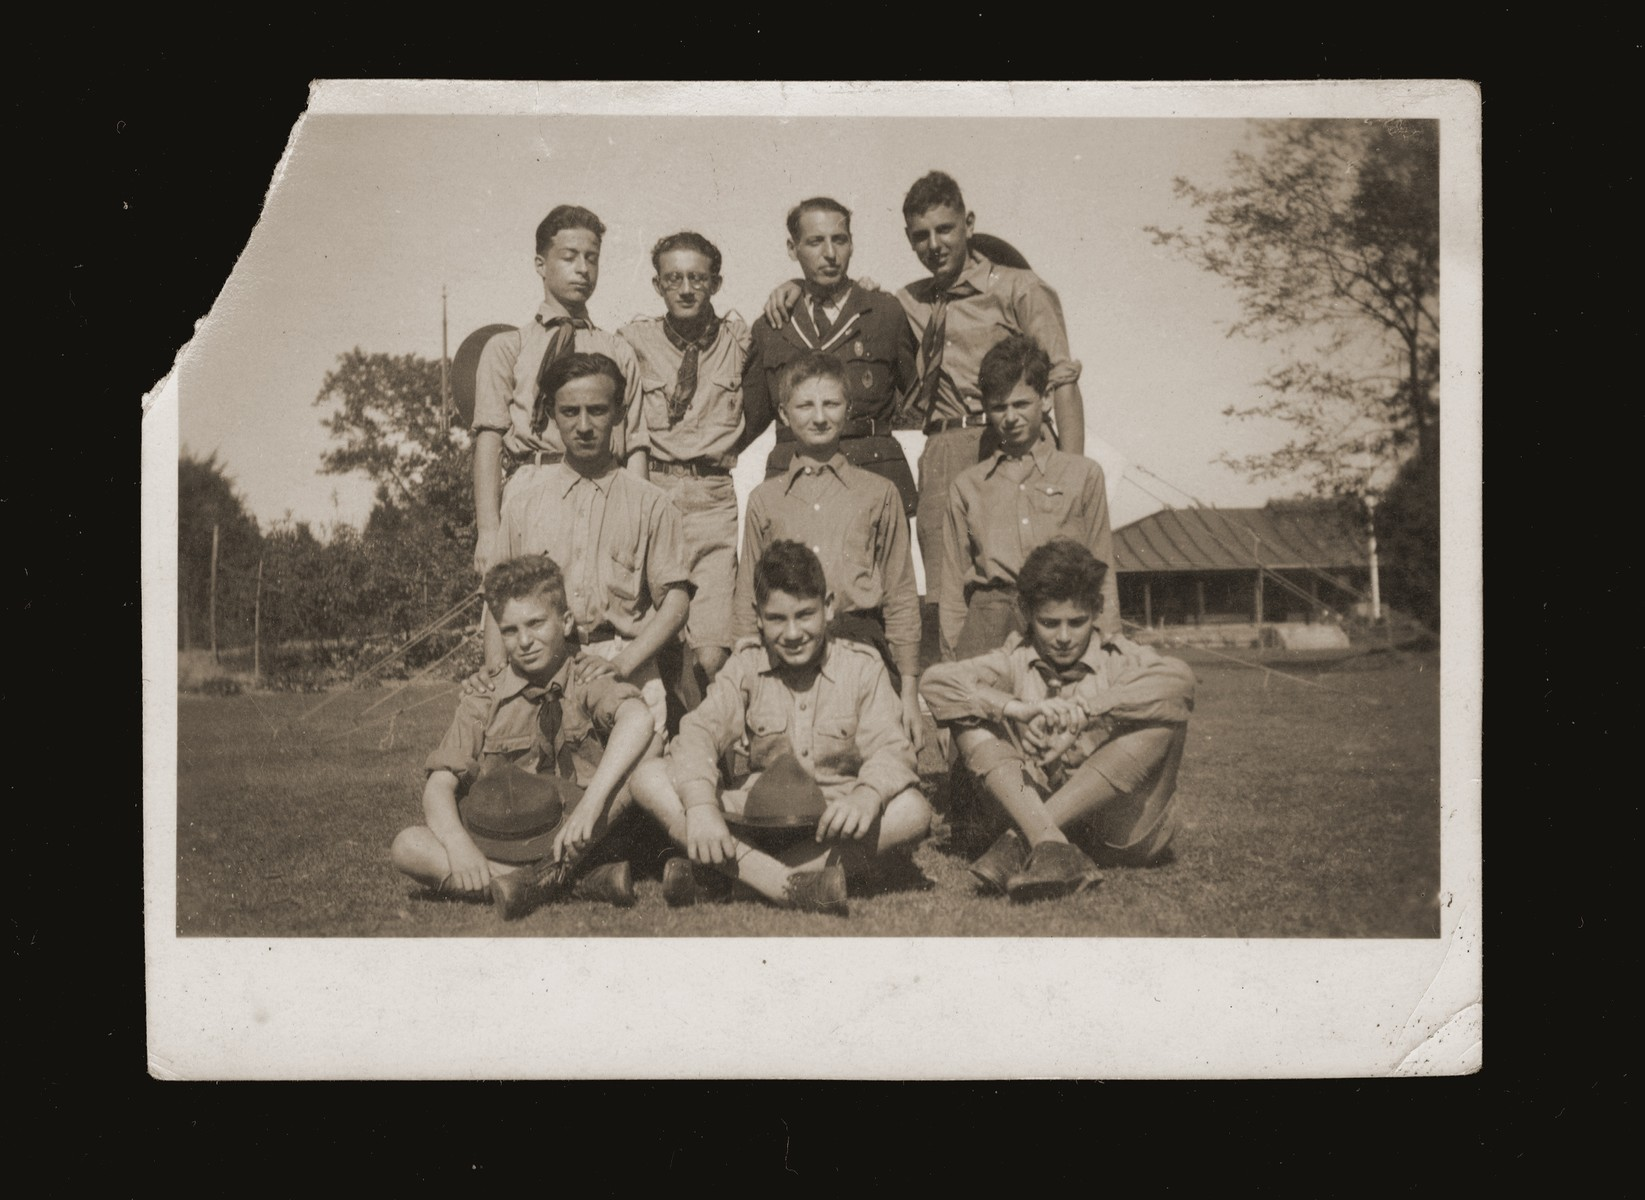 Group portrait of Jewish boy scouts in Shanghai.